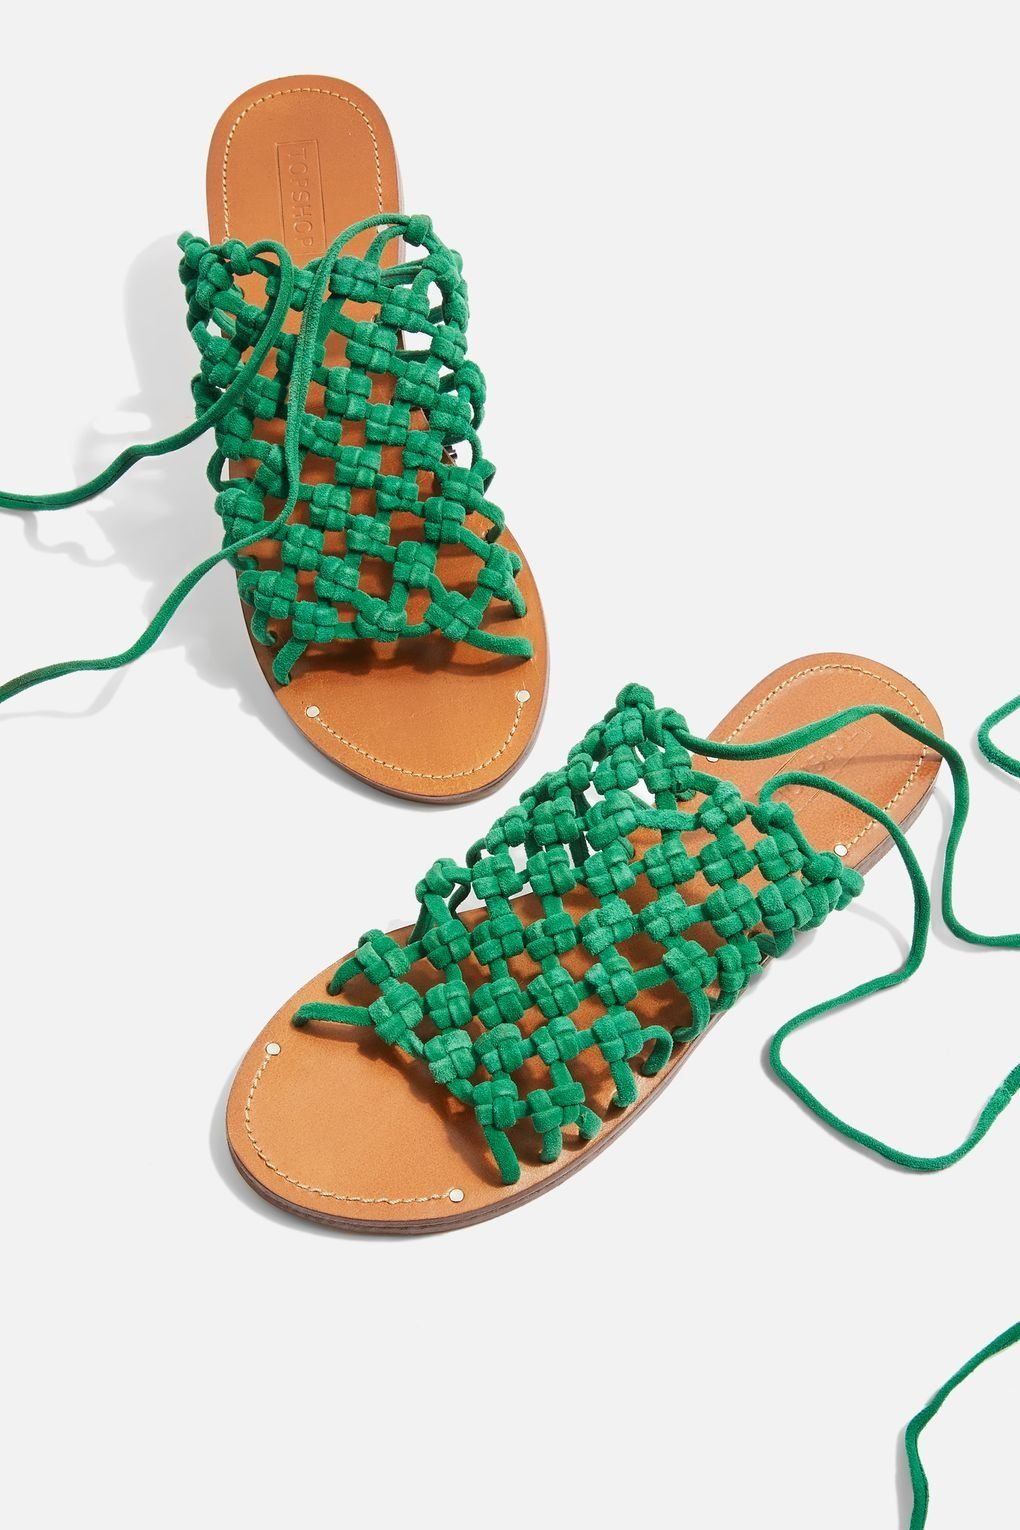 Summer Sandals Shopping Guide For Under £50